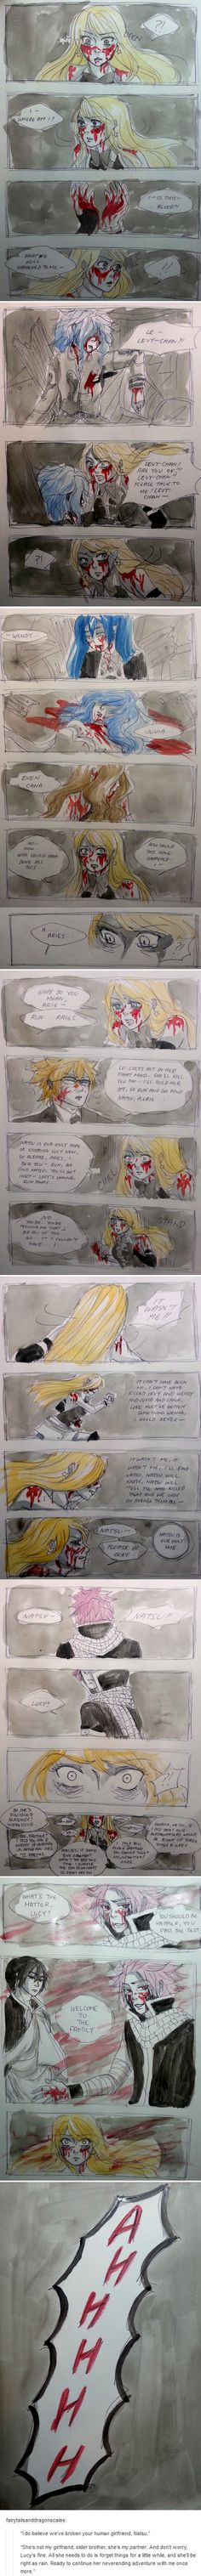 Credit goes to fairytailsanddragonscales from tumblr --- that is freaking terrifying. Oh my gawd... That's... Oh gawd...